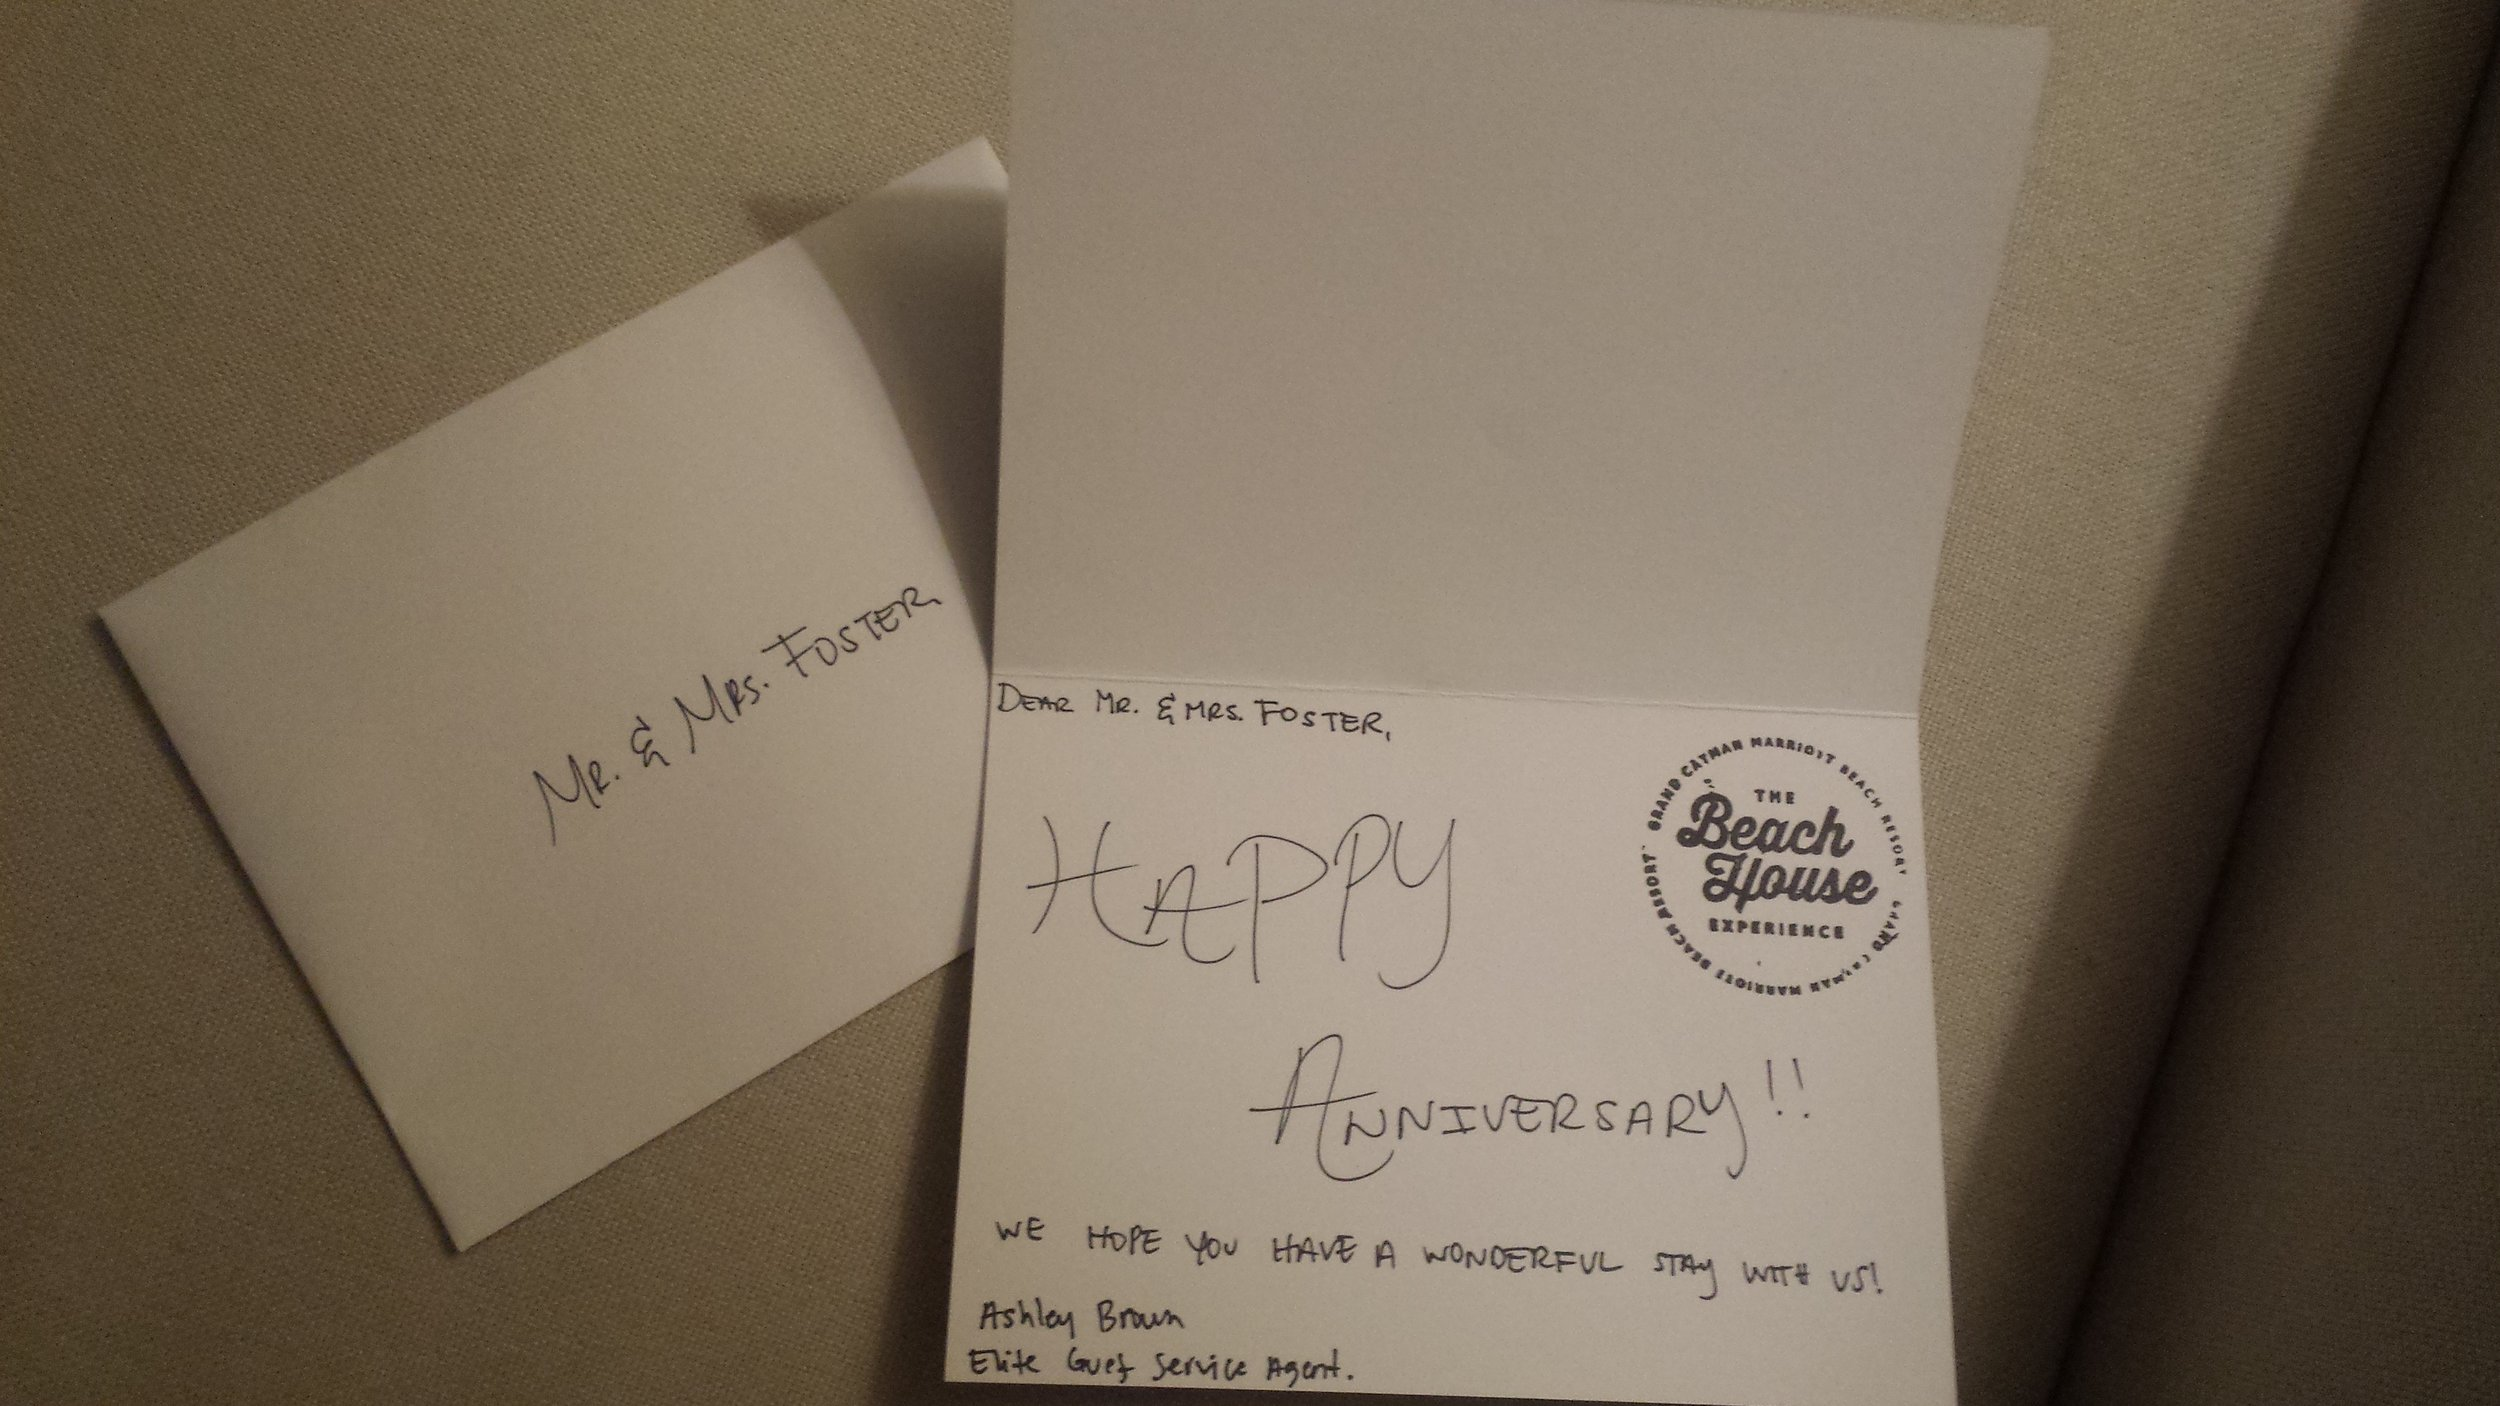 The hotel left us a lovely note upon our arrival as they knew it was our wedding anniversary